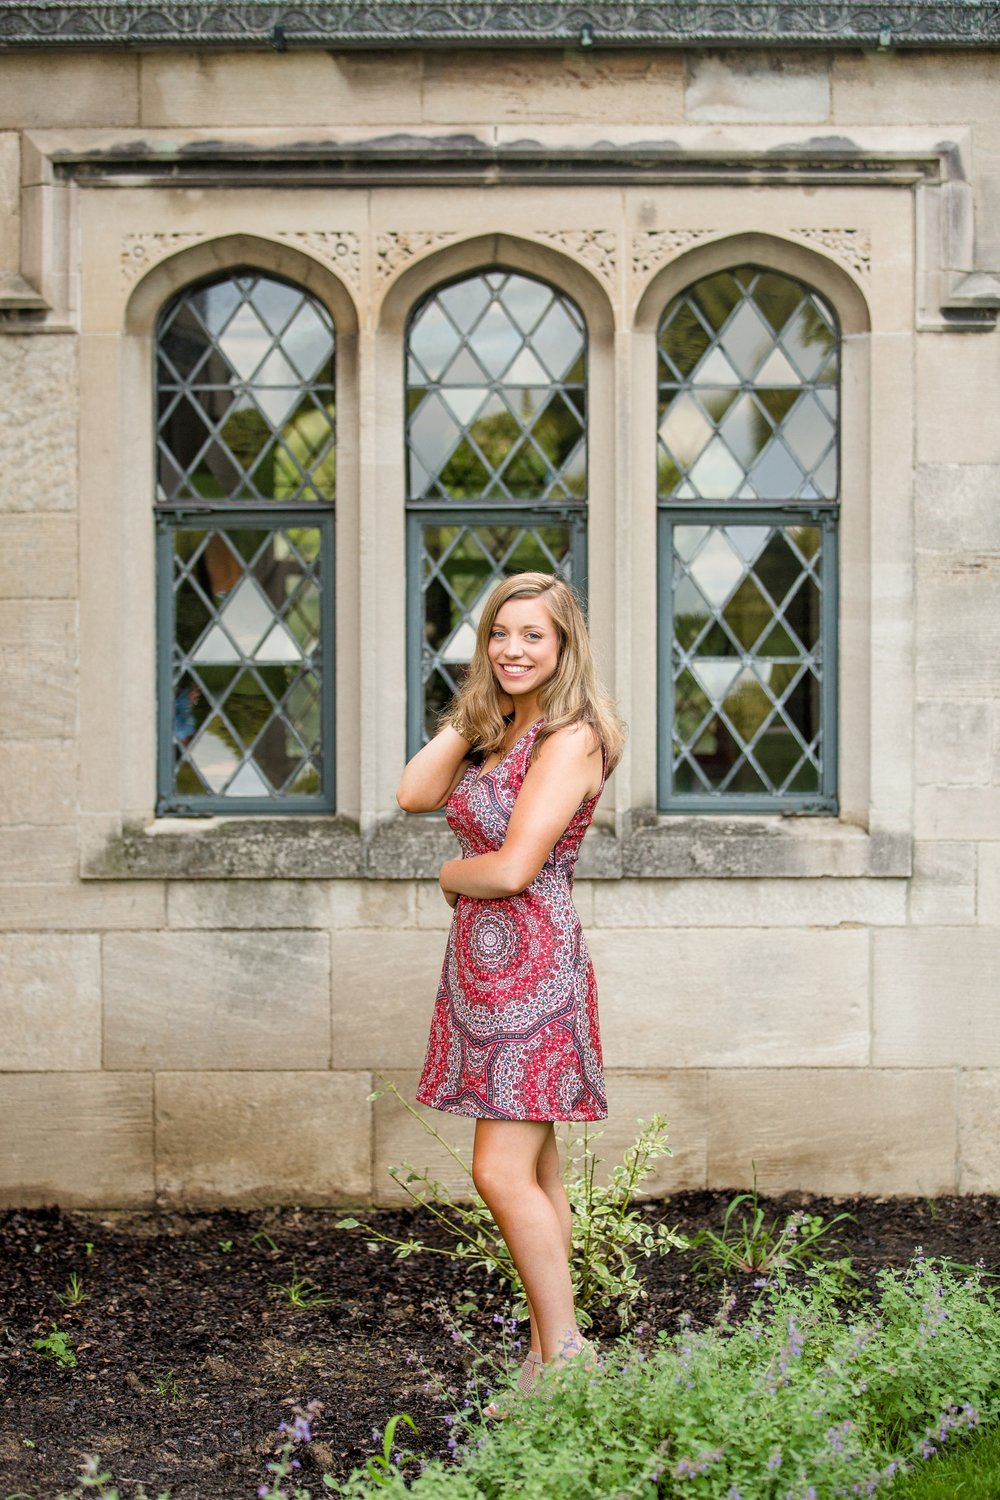 senior pictures pittsburgh, places to take senior pictures in pittsburgh, best places to take senior pictures in pittsburgh, best location for photoshoot in pittsburgh, hartwood acres senior pictures